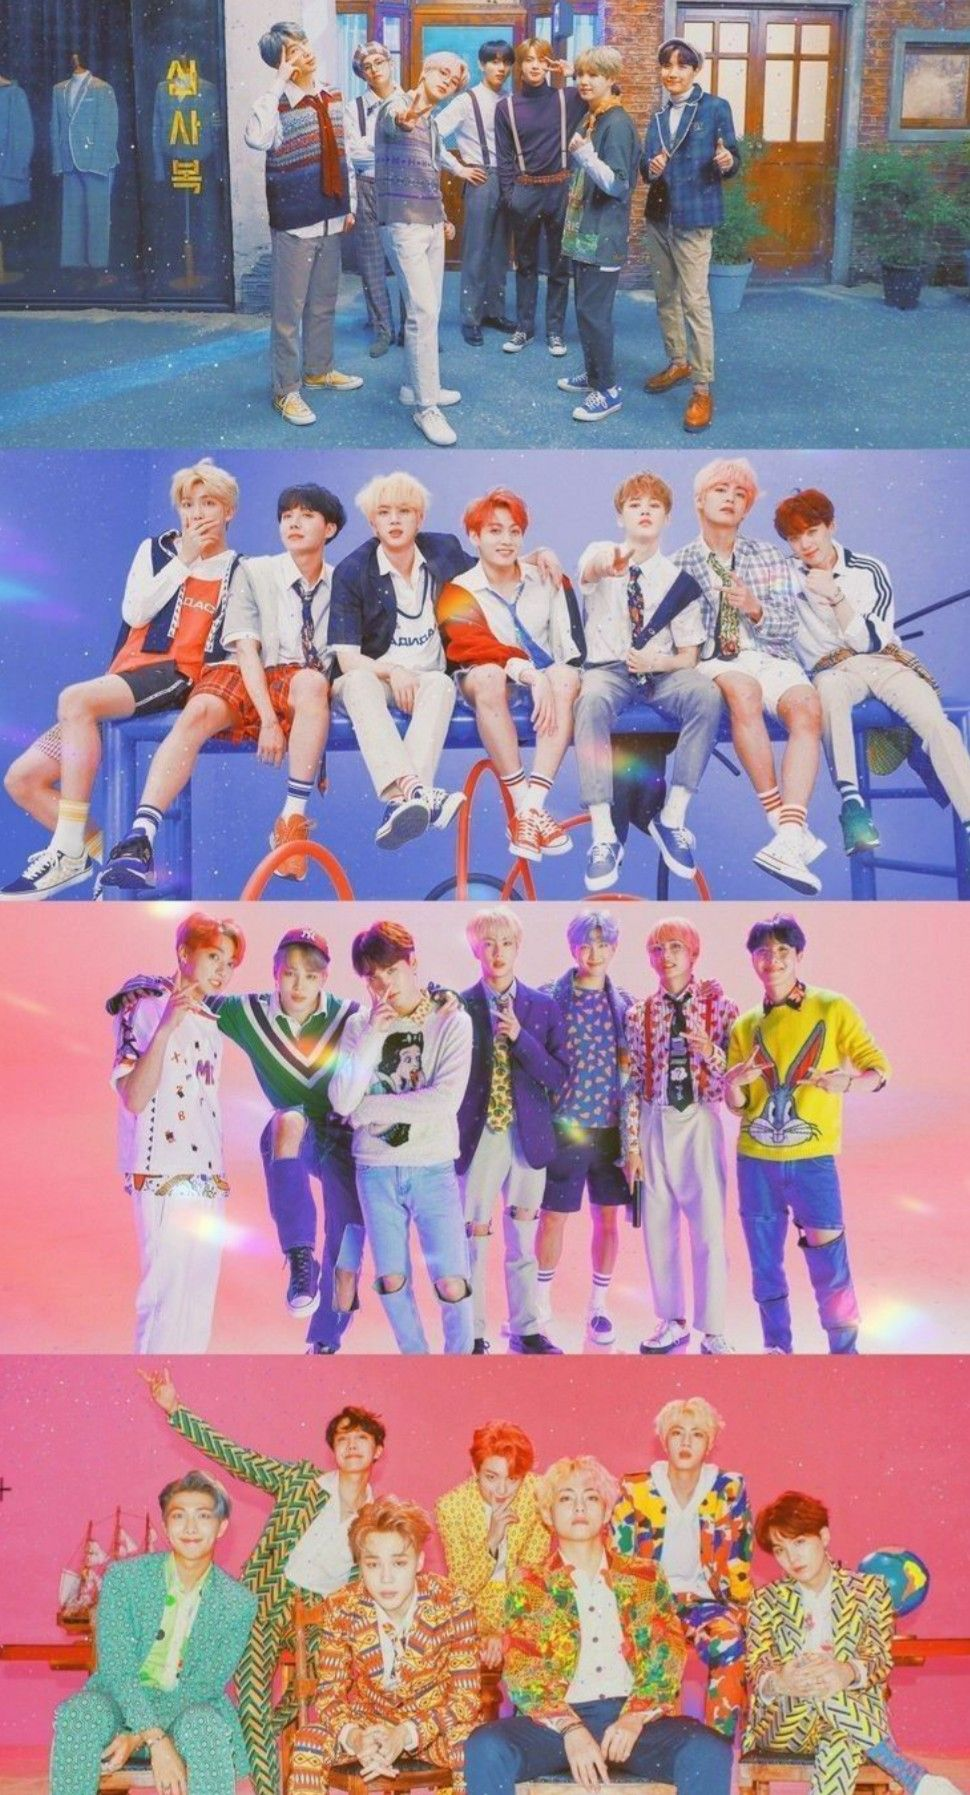 Pin By Desappier And On A Bts Army Bts Wallpaper Bts Backgrounds Foto Bts